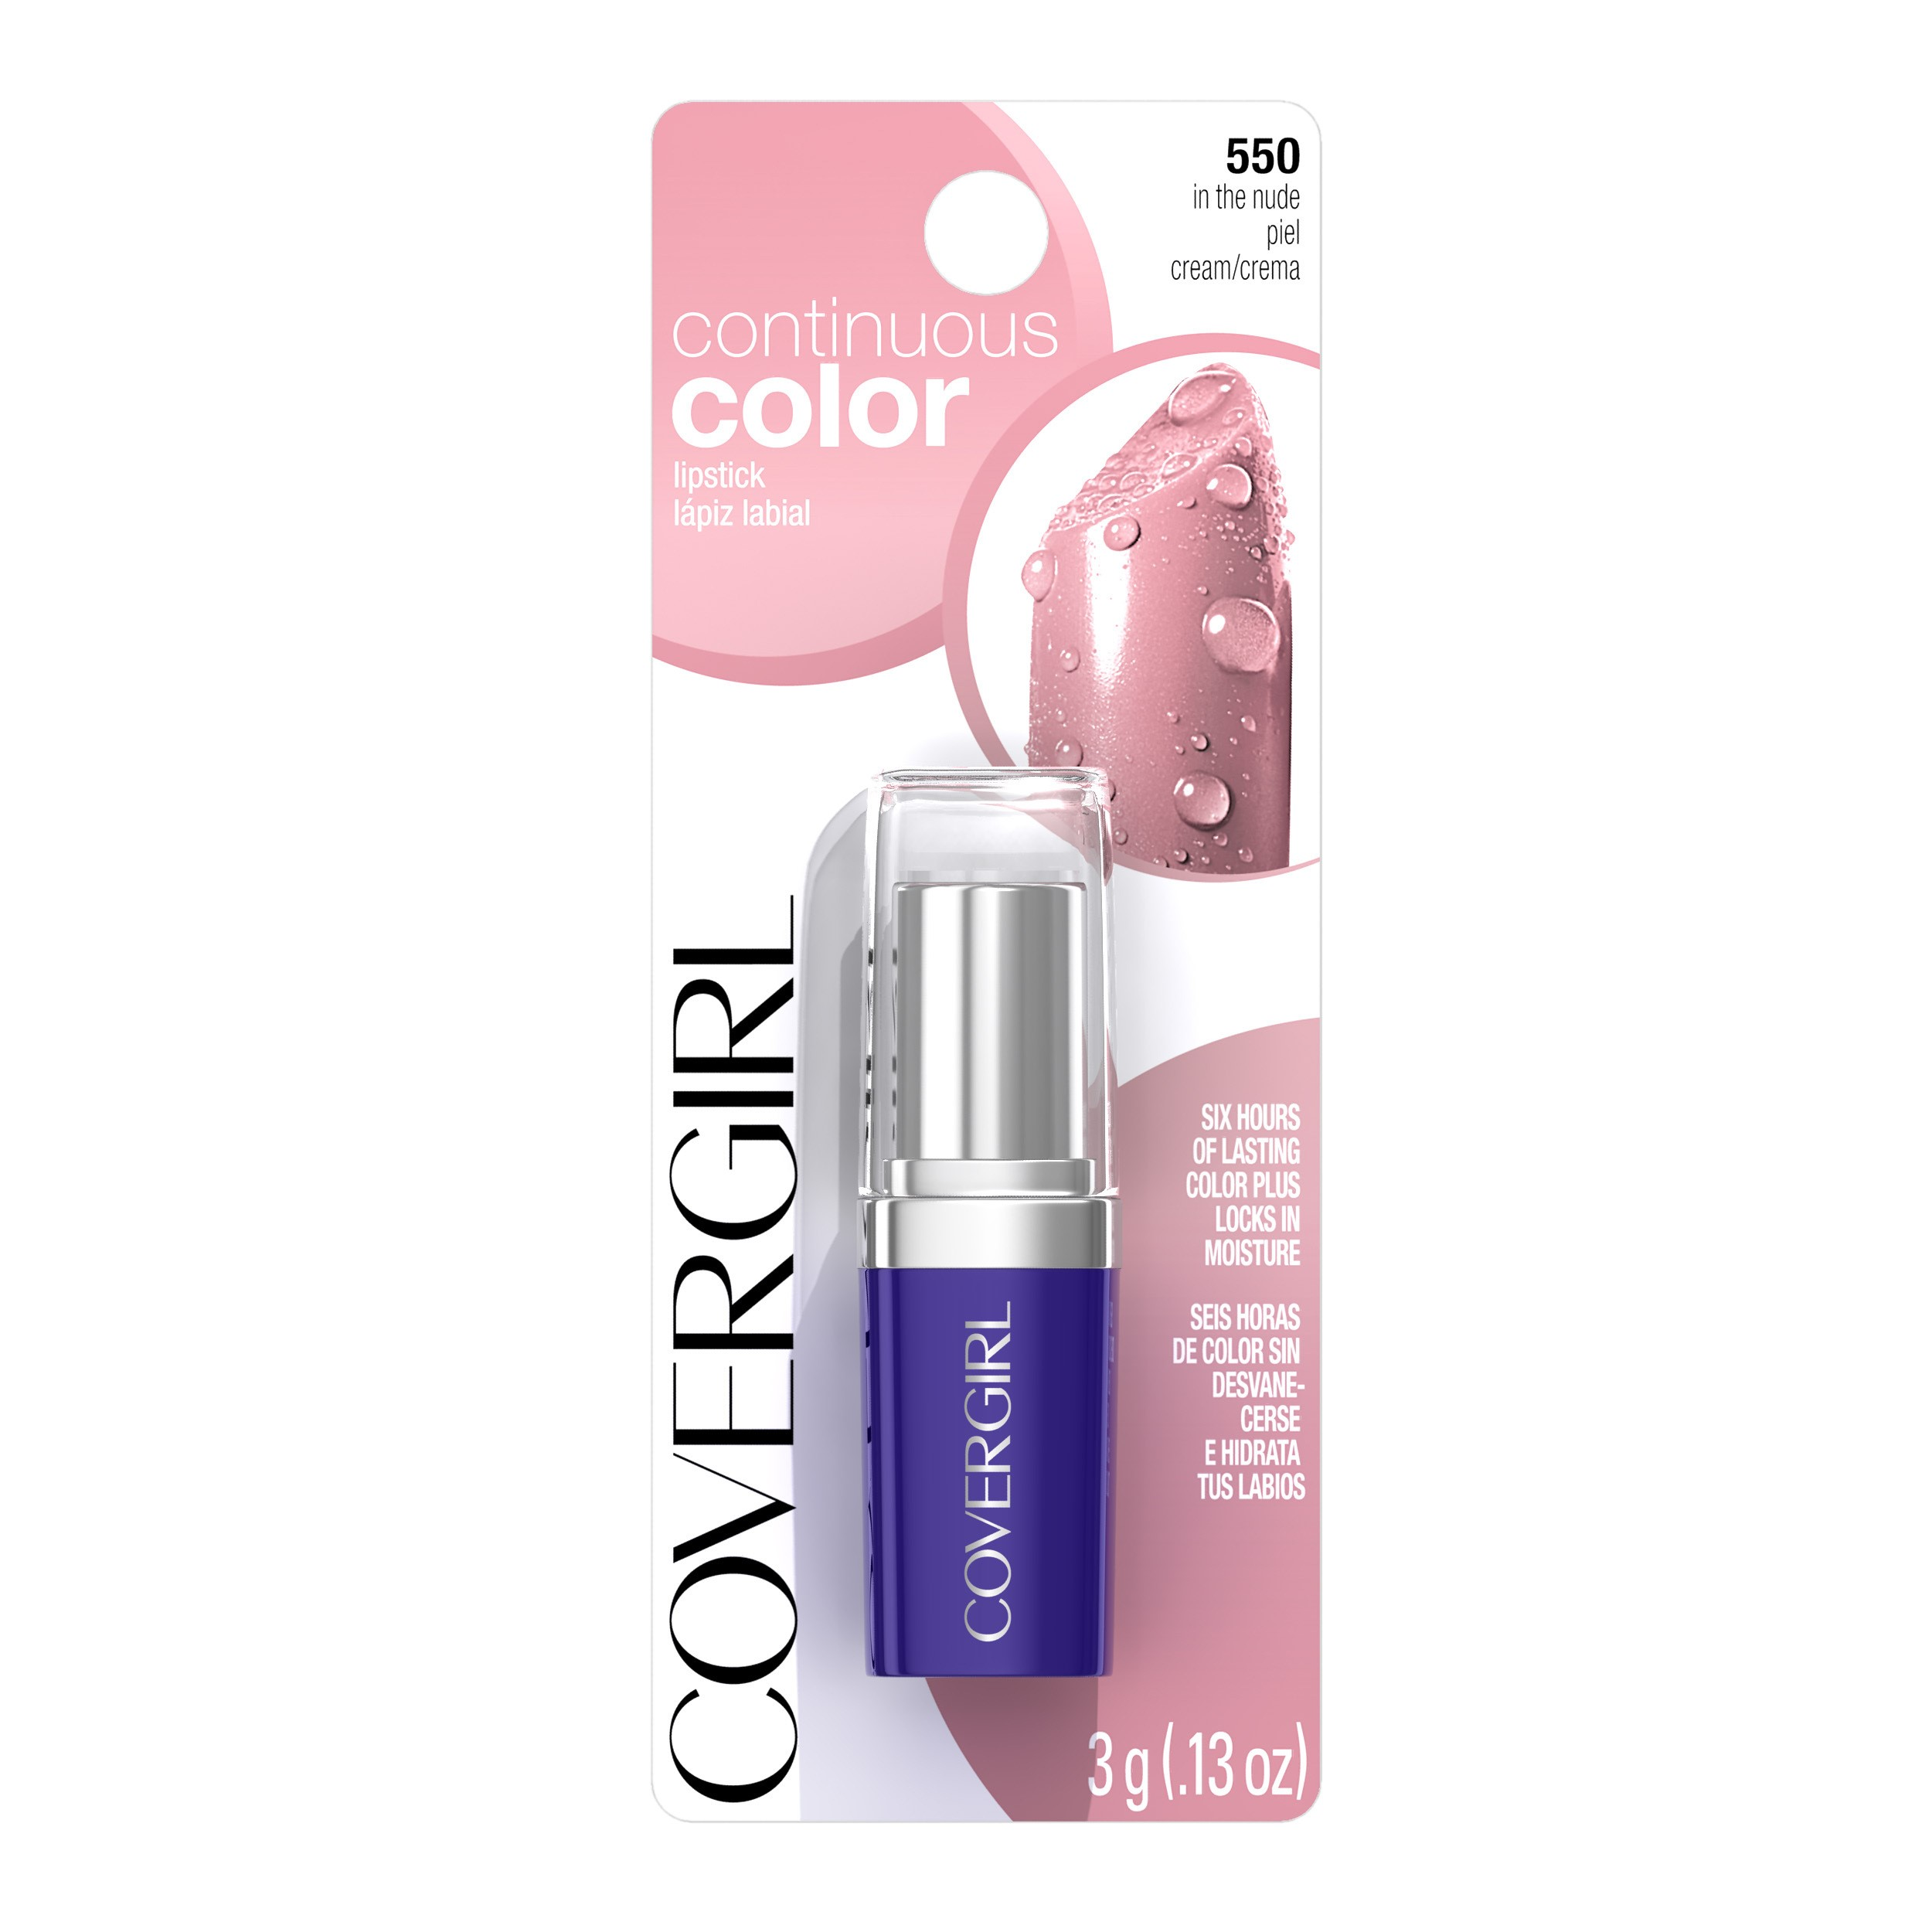 COVERGIRL Continuous Color Lipstick, In the Nude